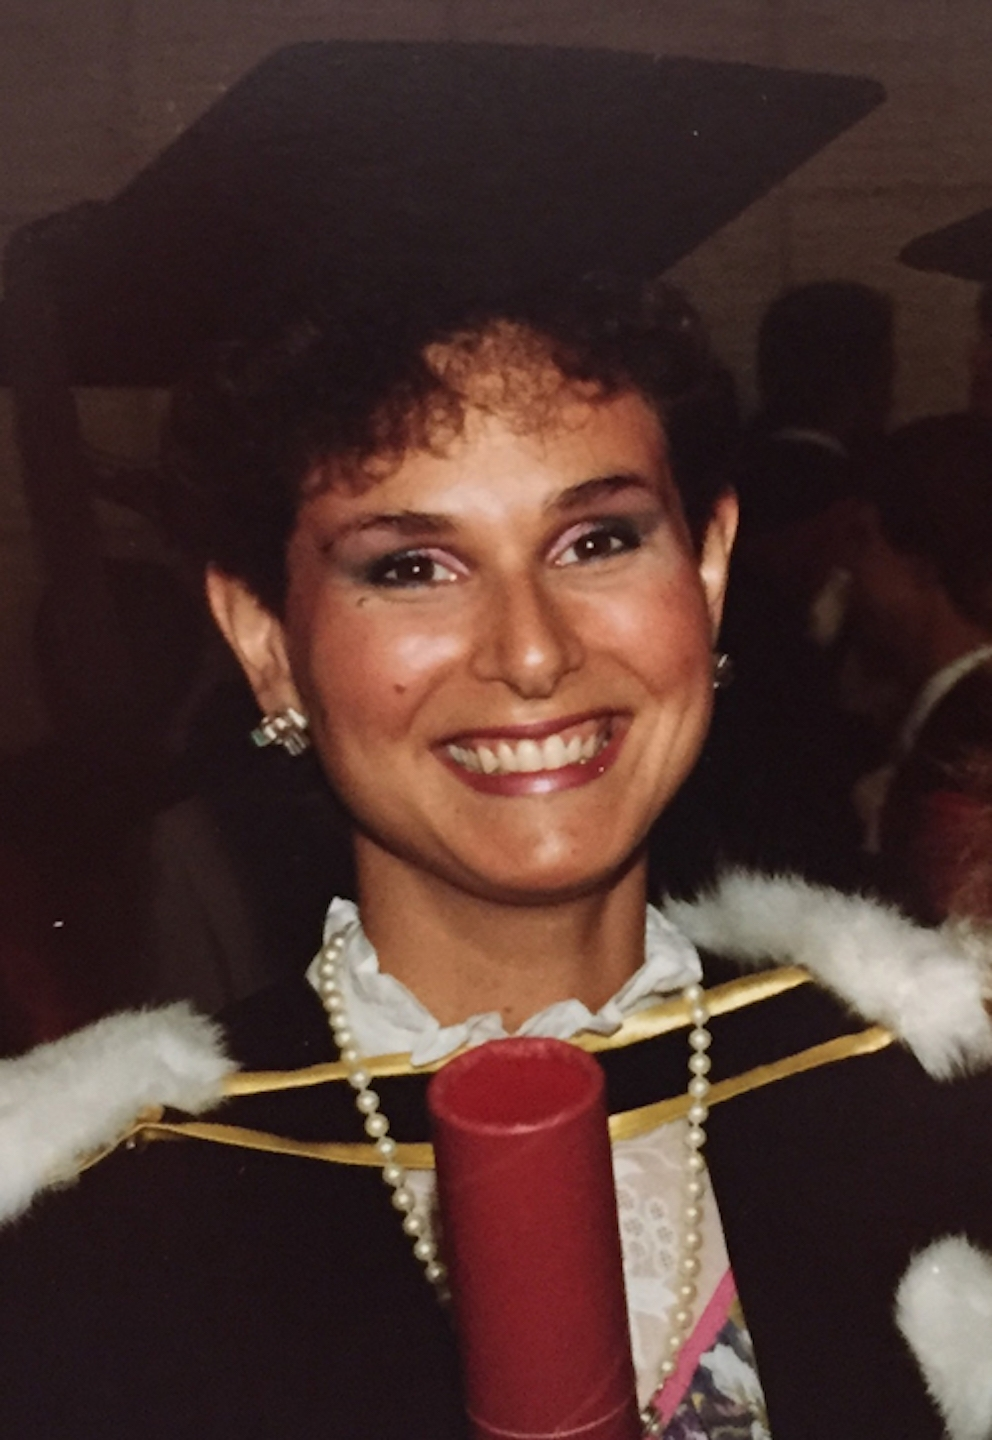 Rochelle Barr smiling at her graduation.